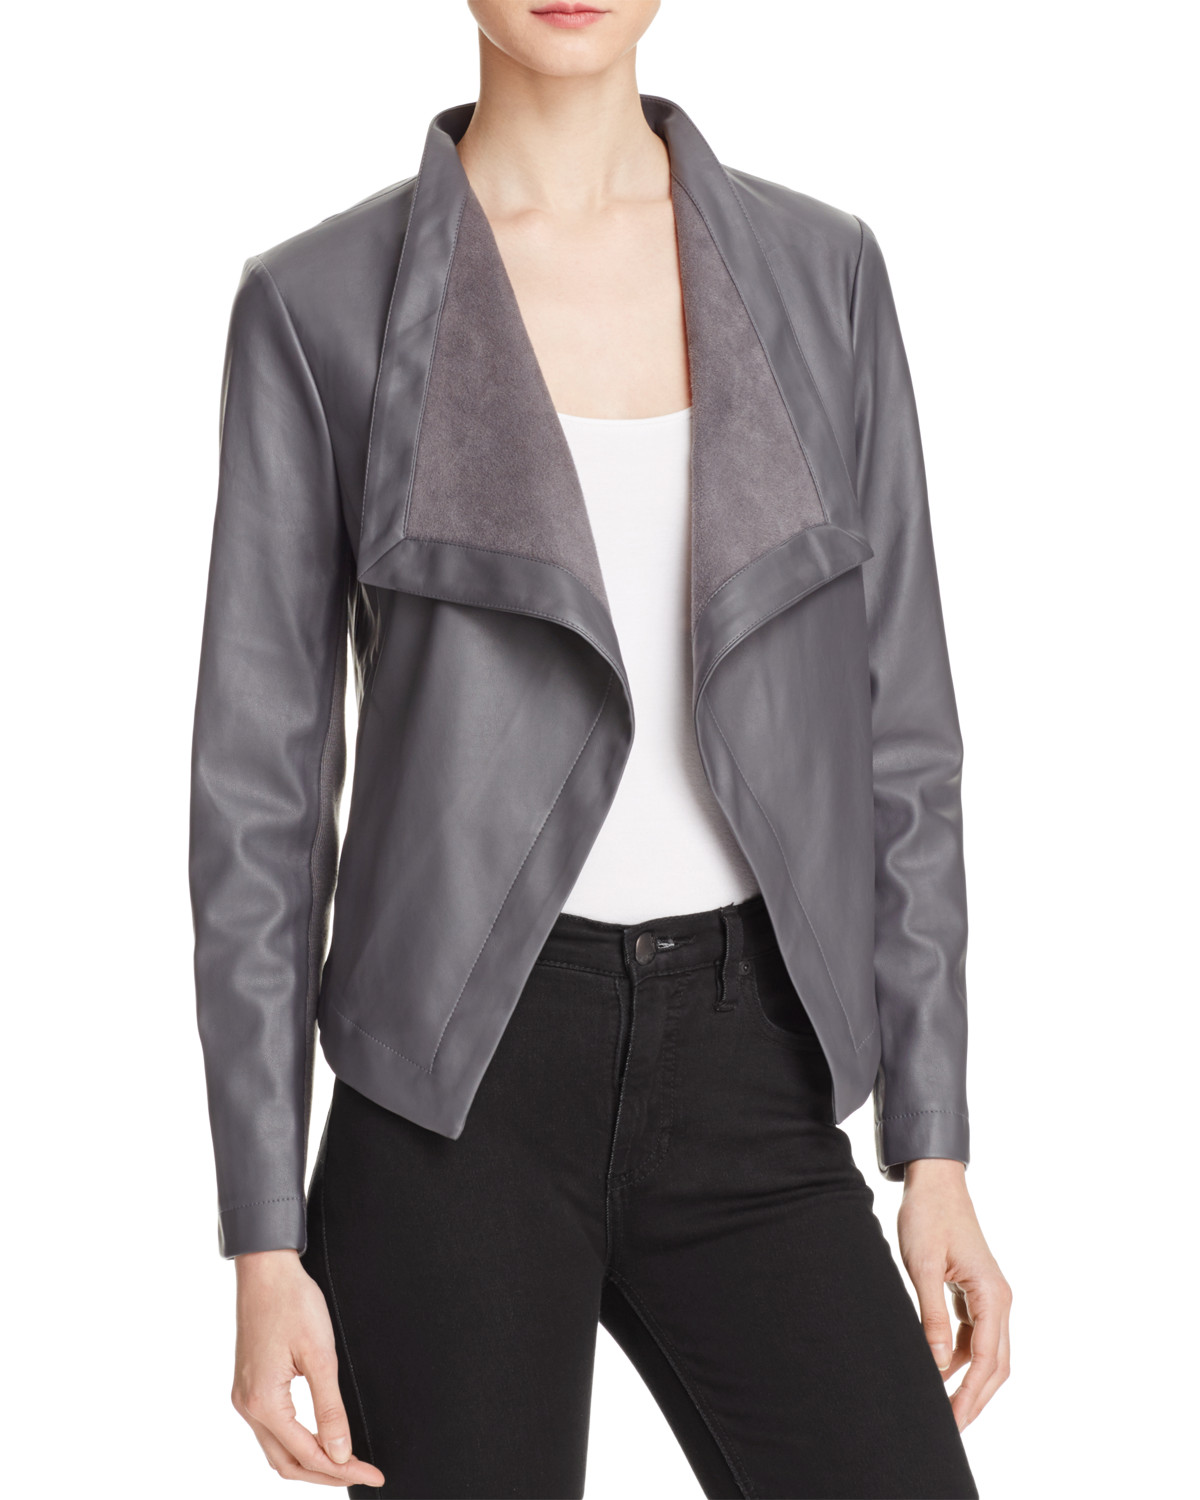 BB Dakota Peppin Draped Faux Leather Jacket from Bloomingdale's // Price: $87 // (Photo courtesy: Bloomingdale's)<p></p>